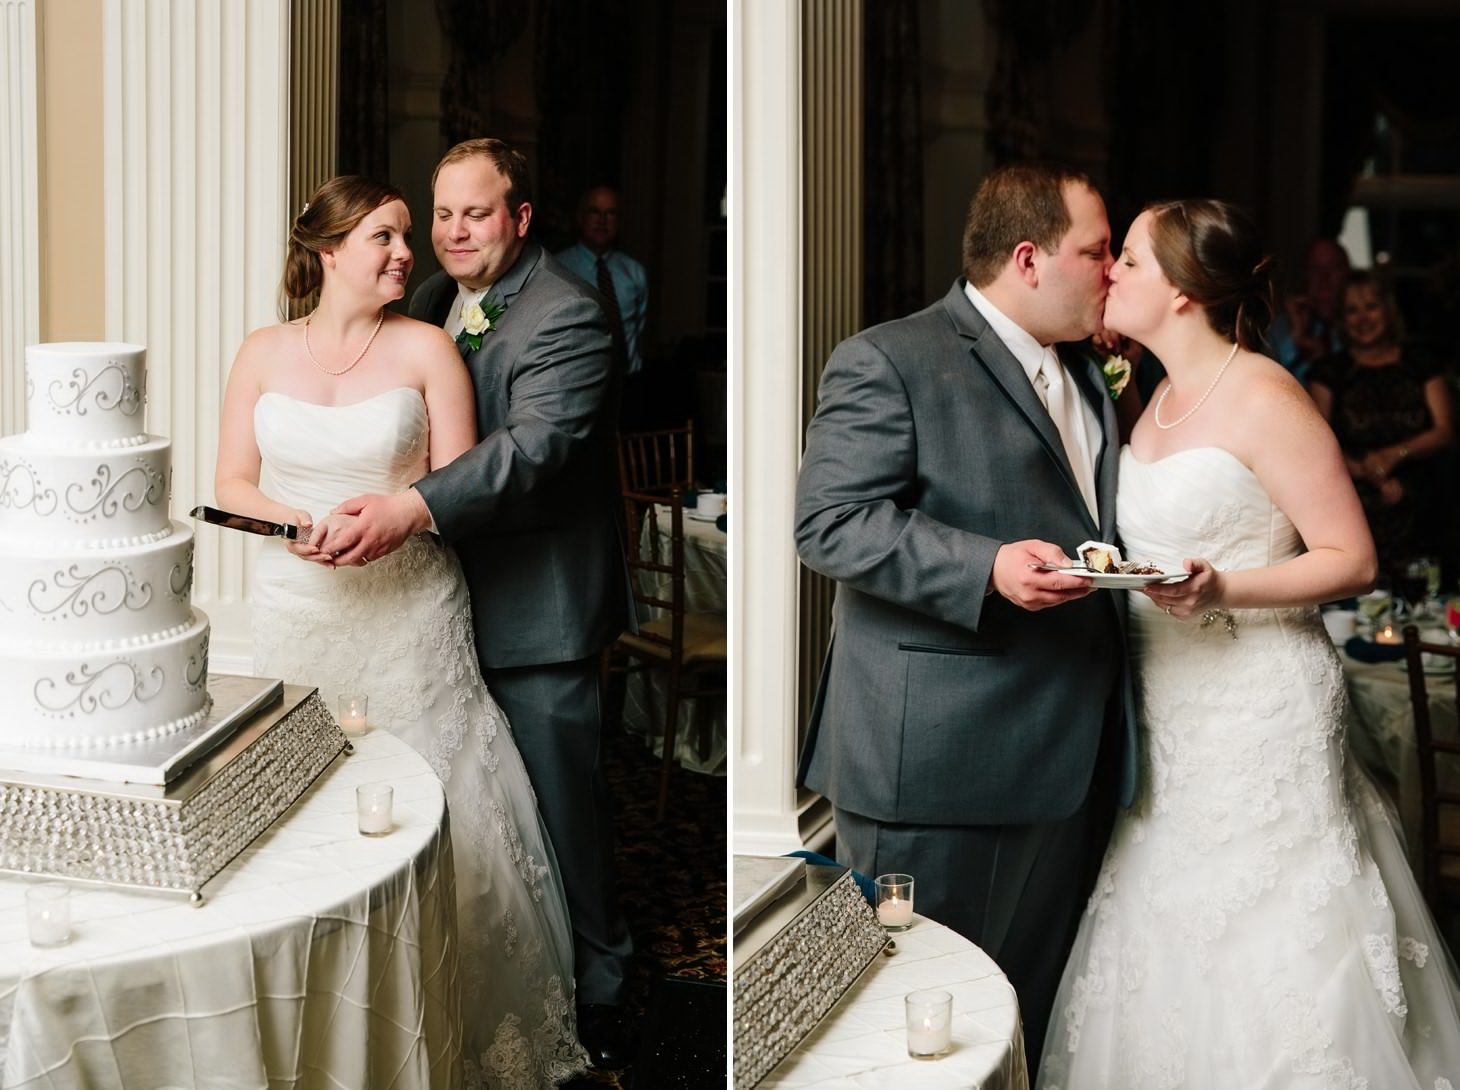 138-nyc-wedding-photographer-falkirk-estate-country-club-smitten-chickens.jpg